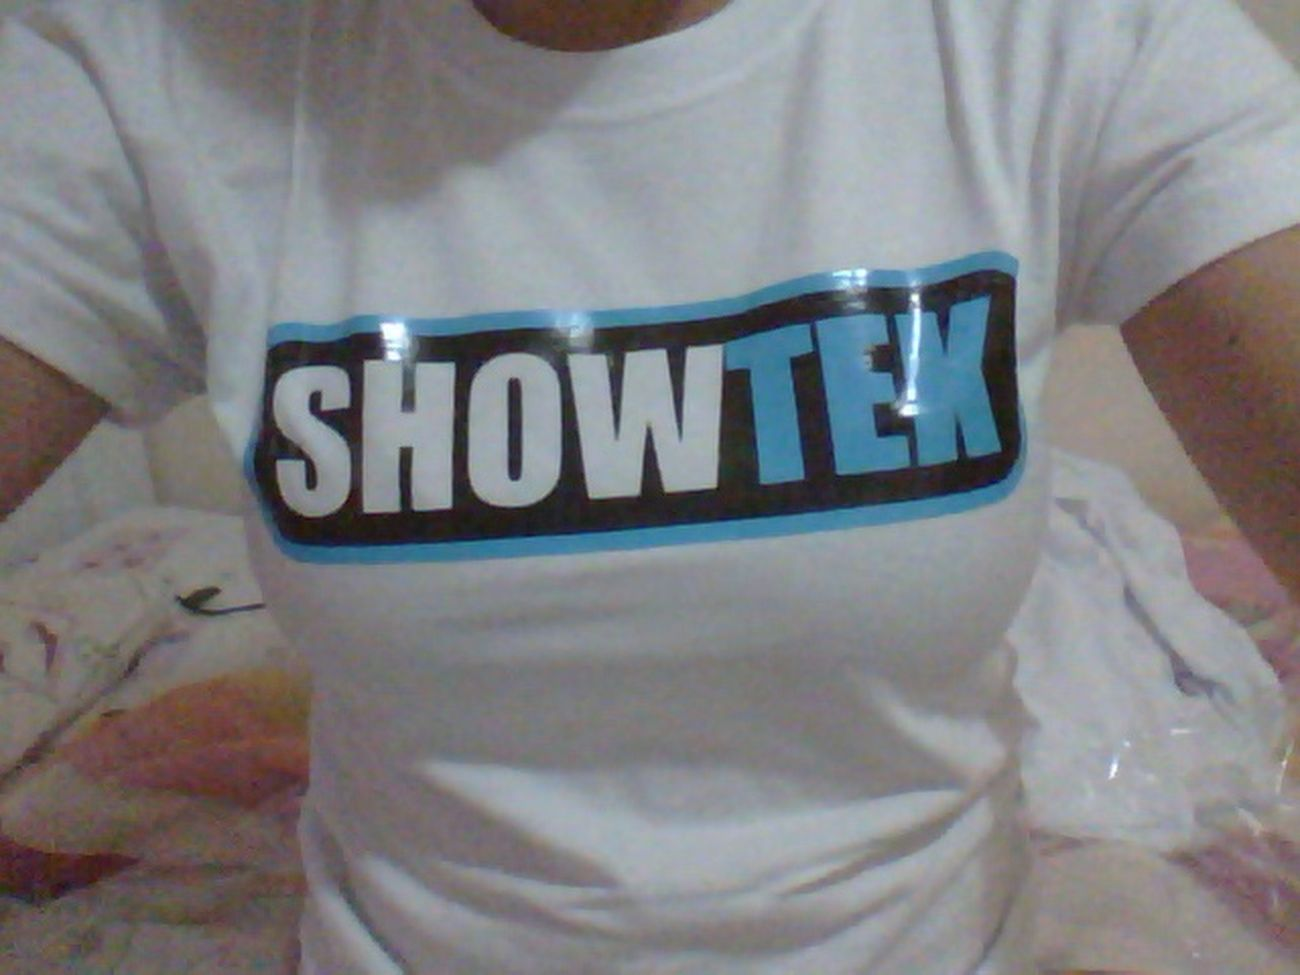 My Showtek